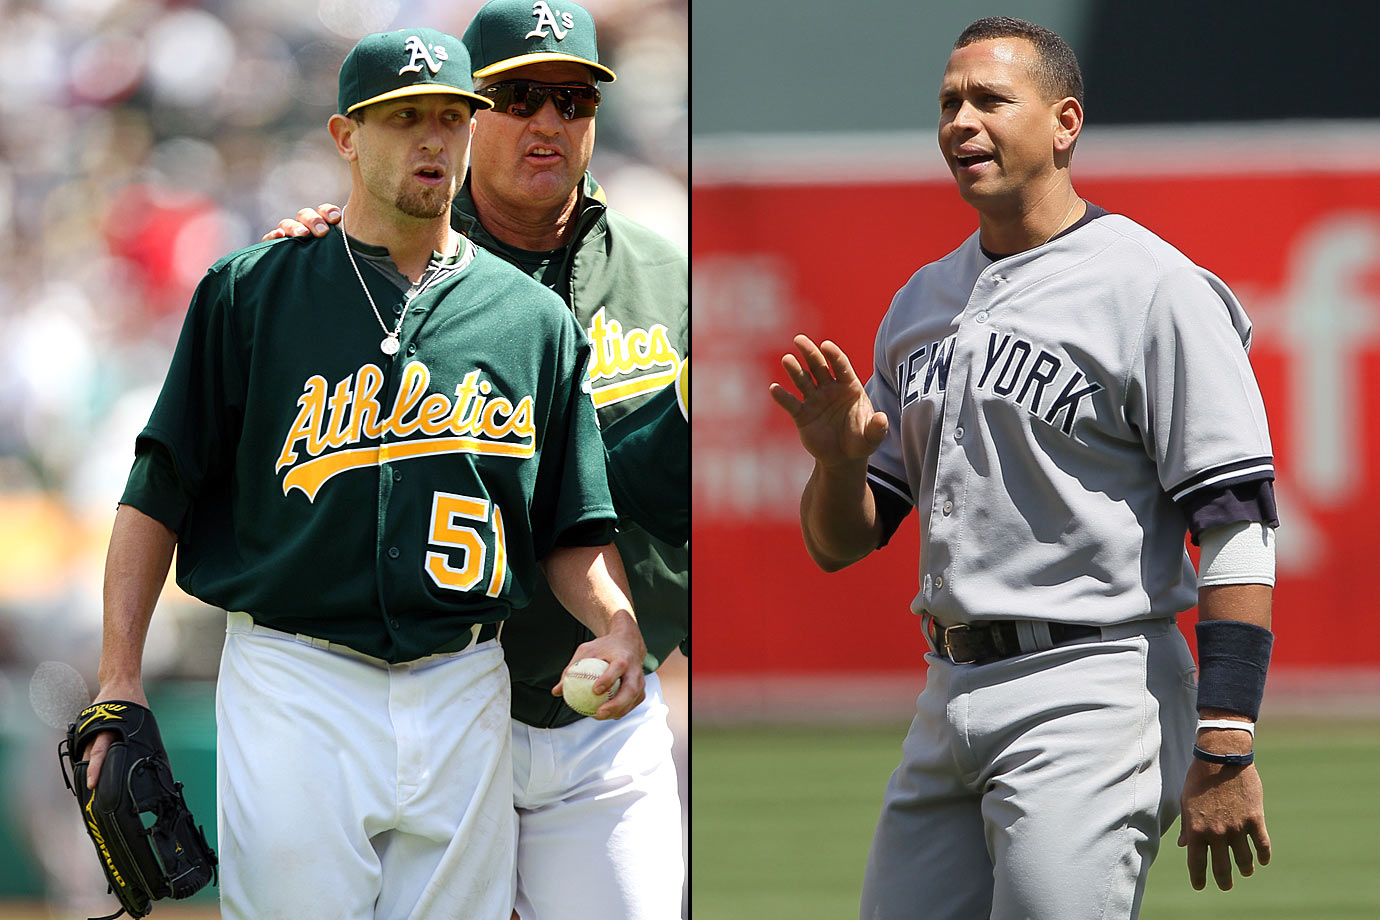 "Rodriguez angered A's pitcher Dallas Braden when he broke the unwritten rule of not walking across an opposing team's pitcher's mound. The incident occurred in the sixth inning of an early-season game in 2010. A-Rod went from first to third on a foul ball by Robinson Cano. On his trip back to first base, Rodriguez walked over the mound. After a double play ended the inning, Braden started yelling at A-Rod, who later said he'd never heard of the rule. When asked about it after the game, Braden suggested Rodriguez ""take a note from his captain"" and not do it again."